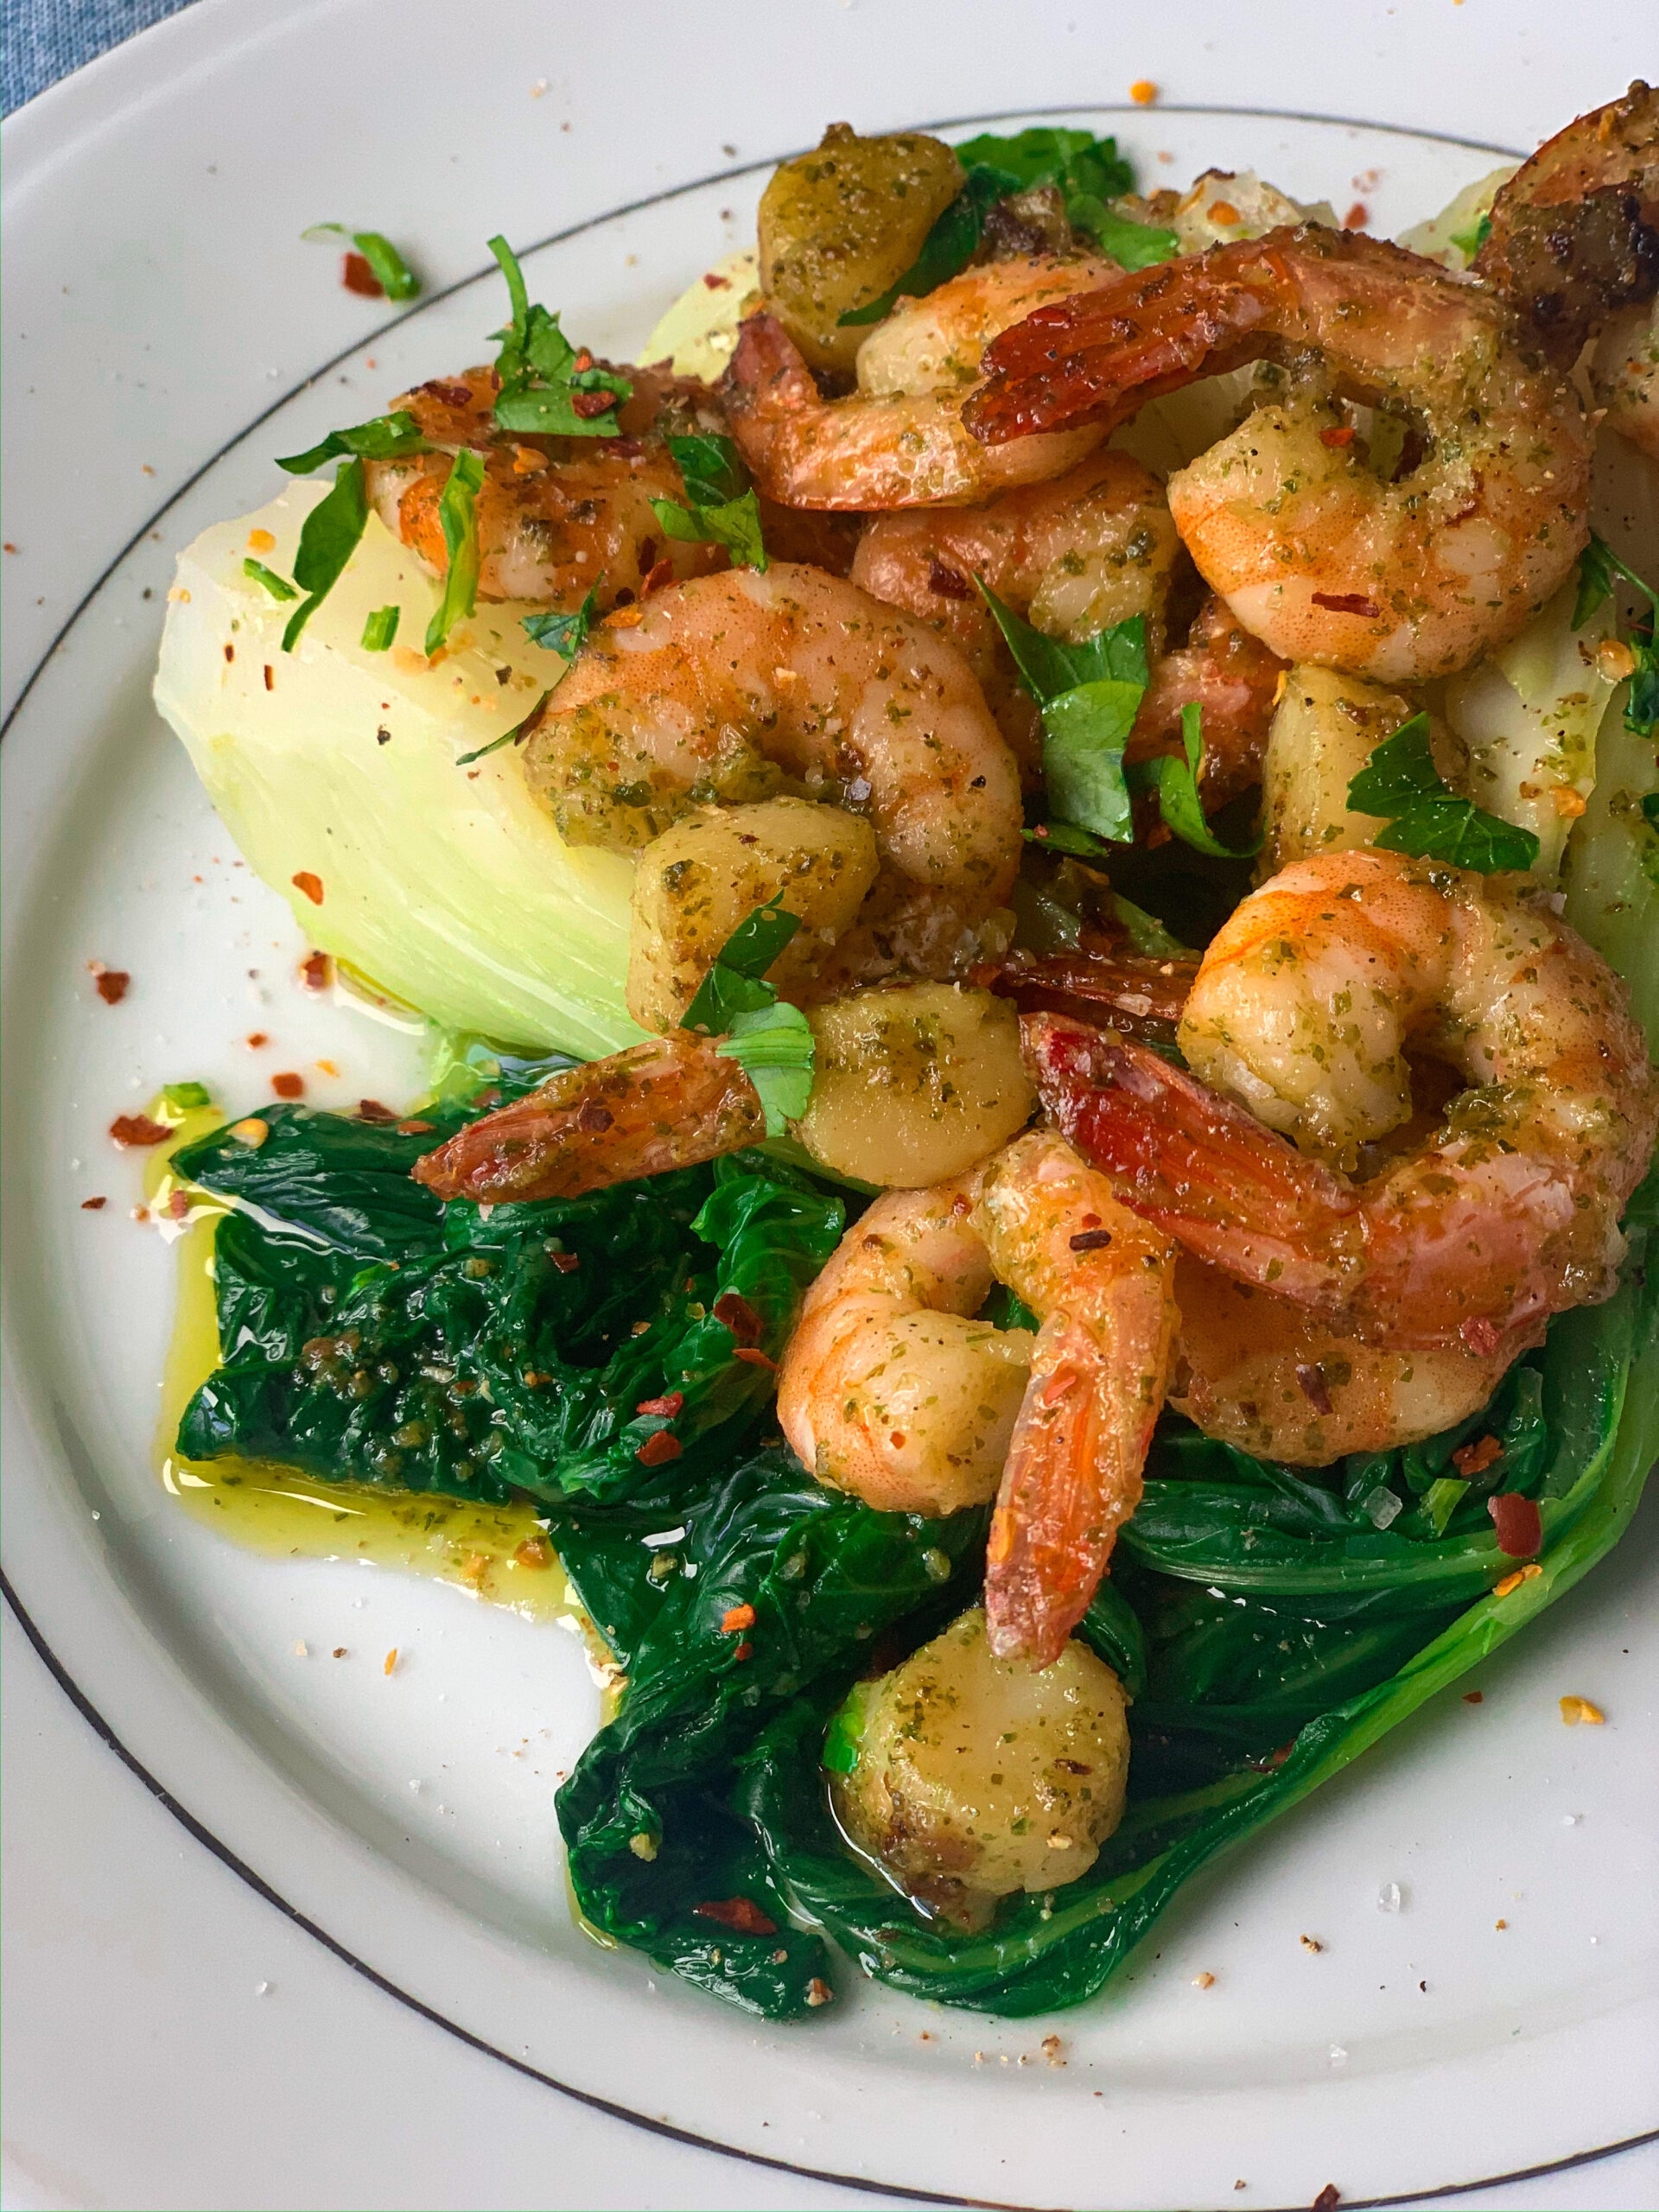 Picture of pak choi with chilli scallops and prawns